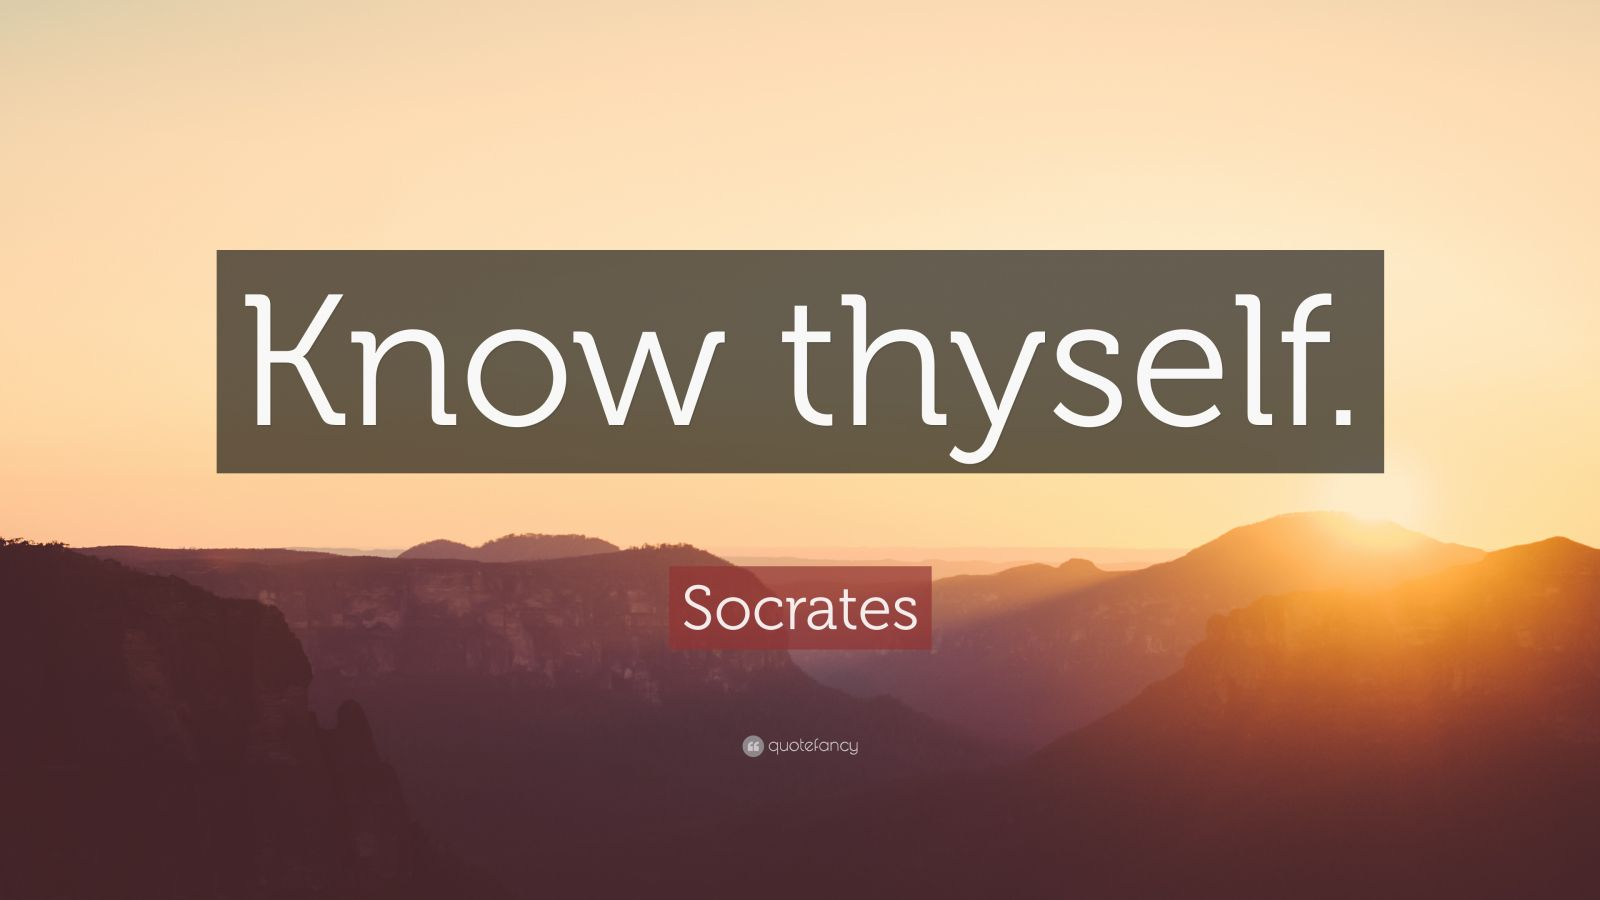 Socrates Quote Ldquo Know Thyself Rdquo 32 Wallpapers Quotefancy